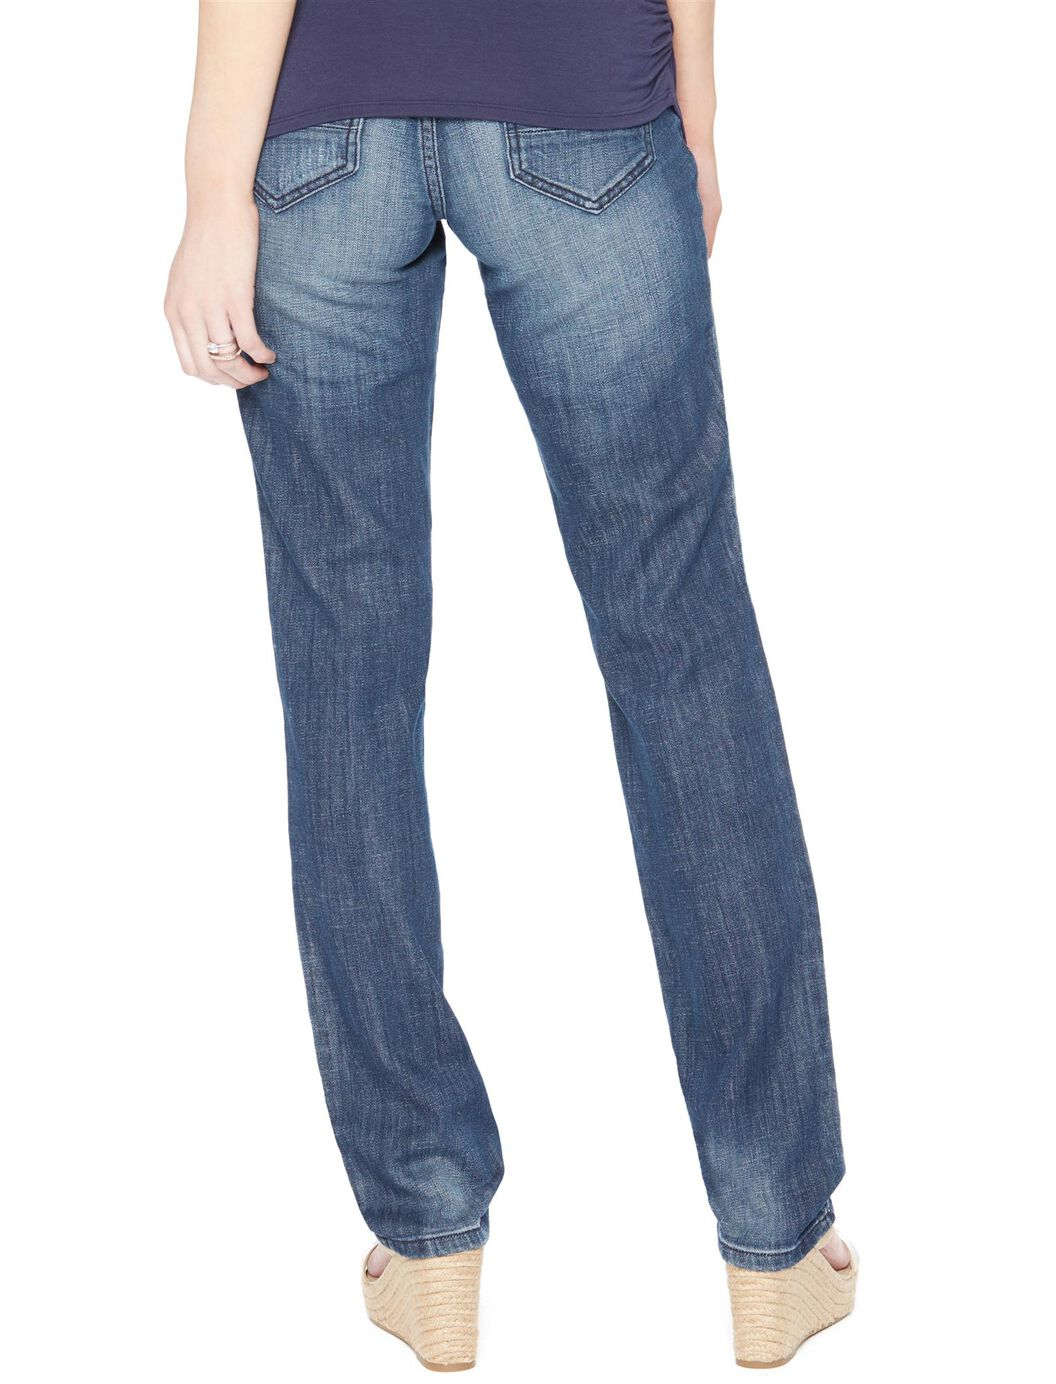 ... Secret Fit Belly Rip and Repair Flare Maternity Jeans, Night Breeze  Dark ... - Secret Fit Belly Rip And Repair Flare Maternity Jeans Motherhood